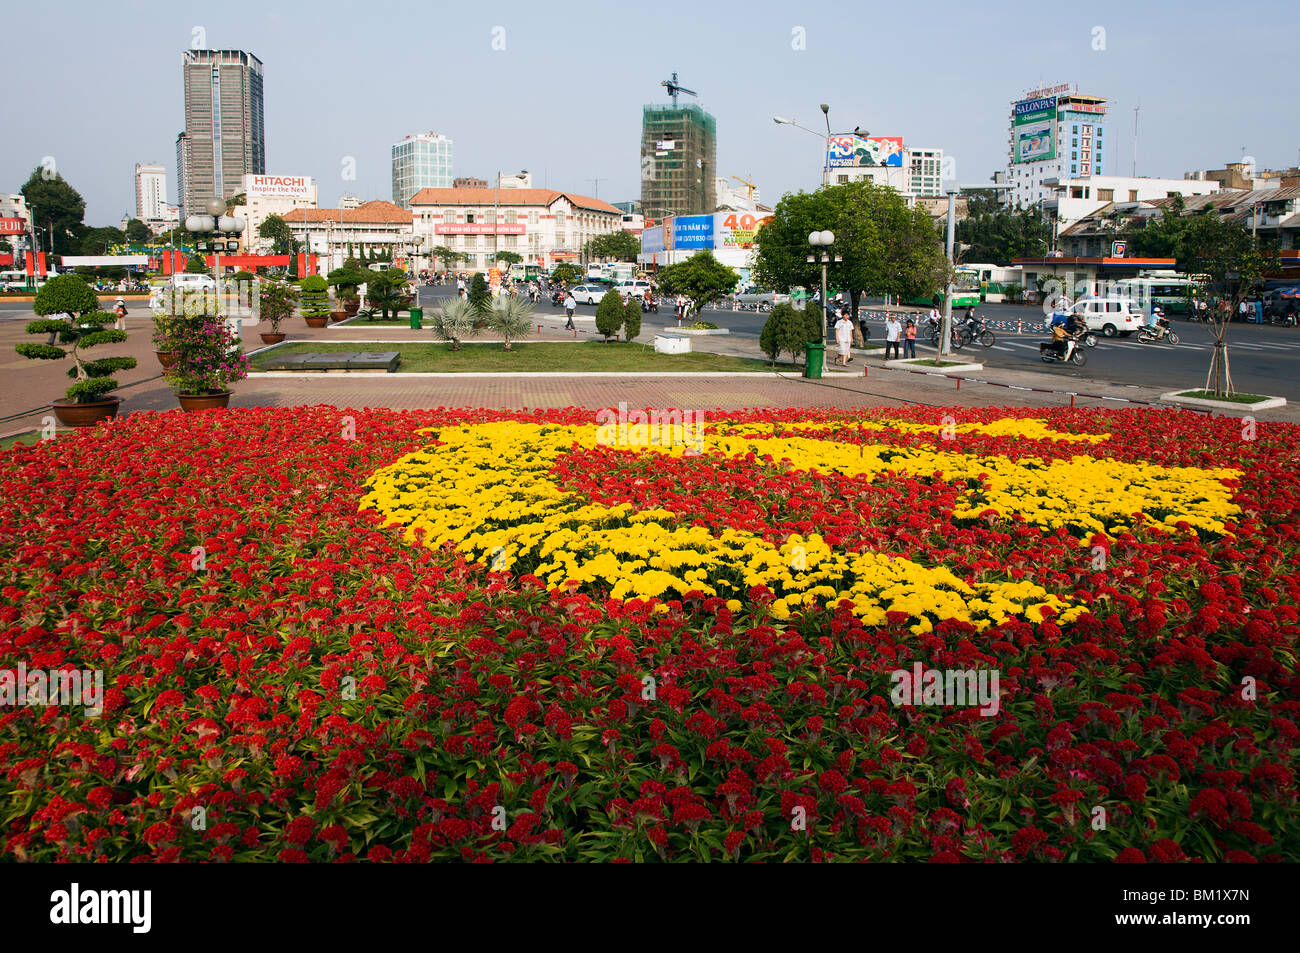 The Hammer and Sickle communist symbol as a flowerbed ath the western end of the park along Pham Ngu Lao Street. - Stock Image